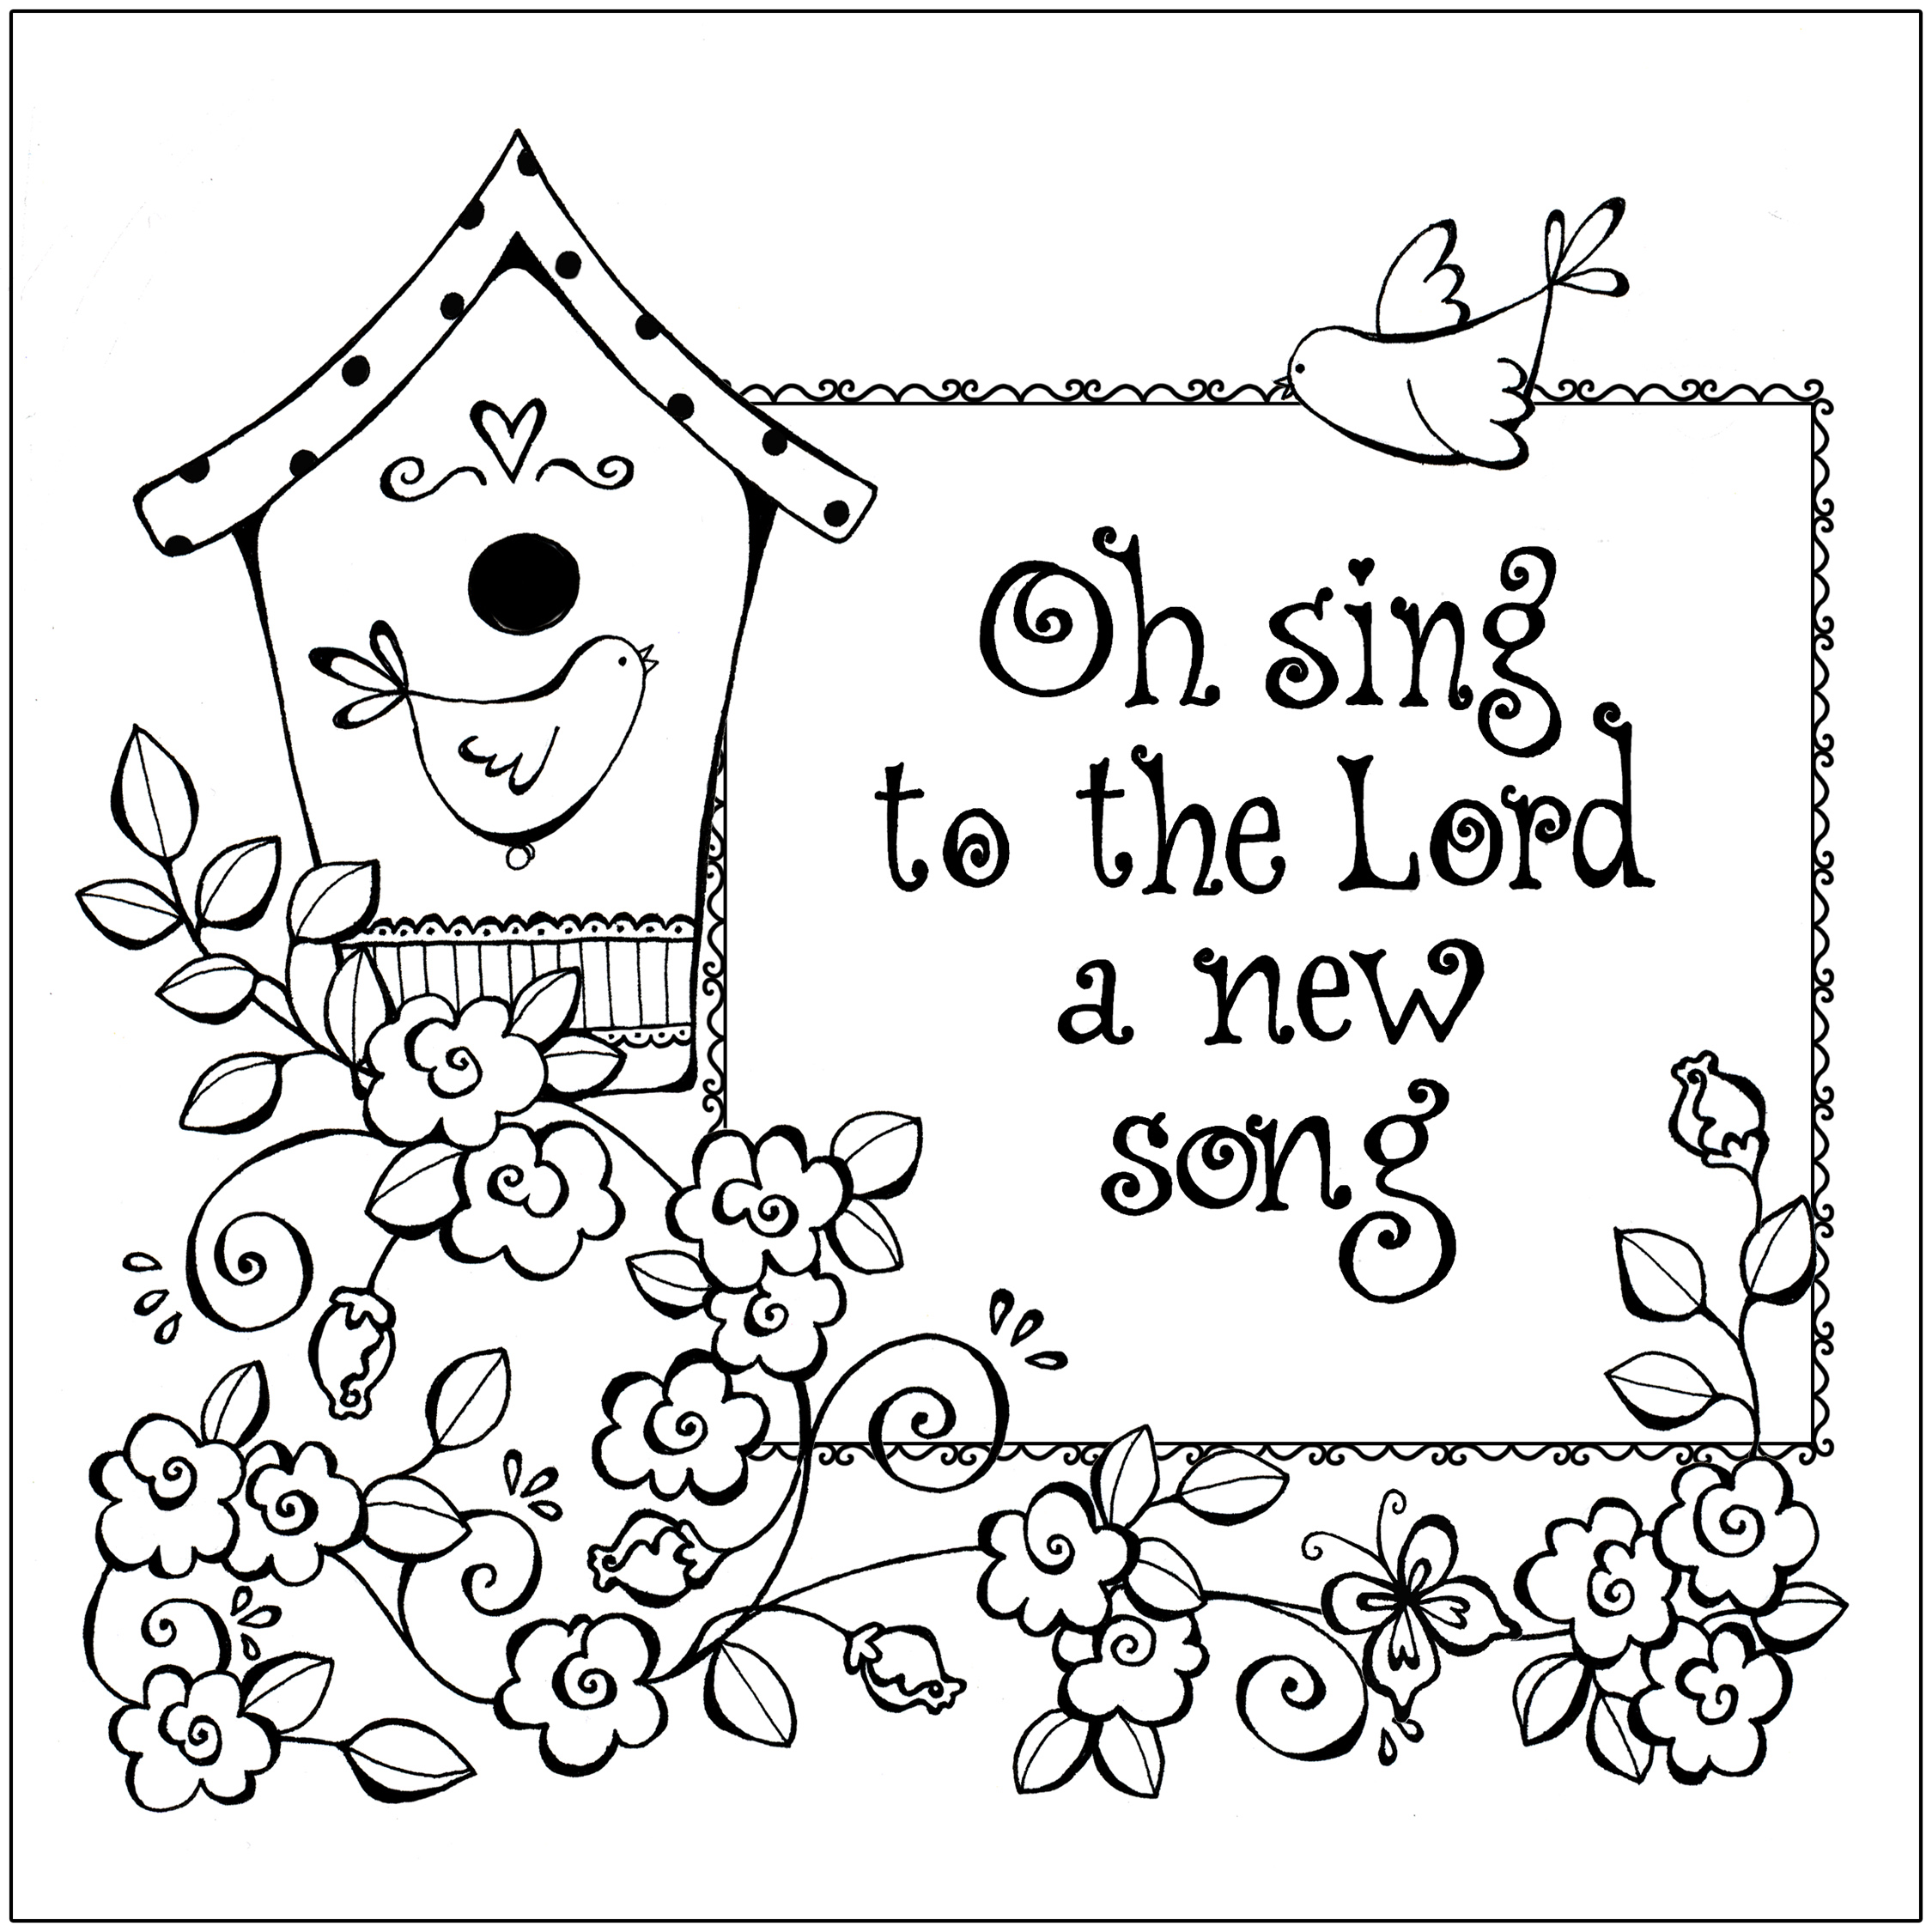 Coloring Pages Toddler Bible Coloring Pages christian coloring pages free futpal com printable for kids best coloring